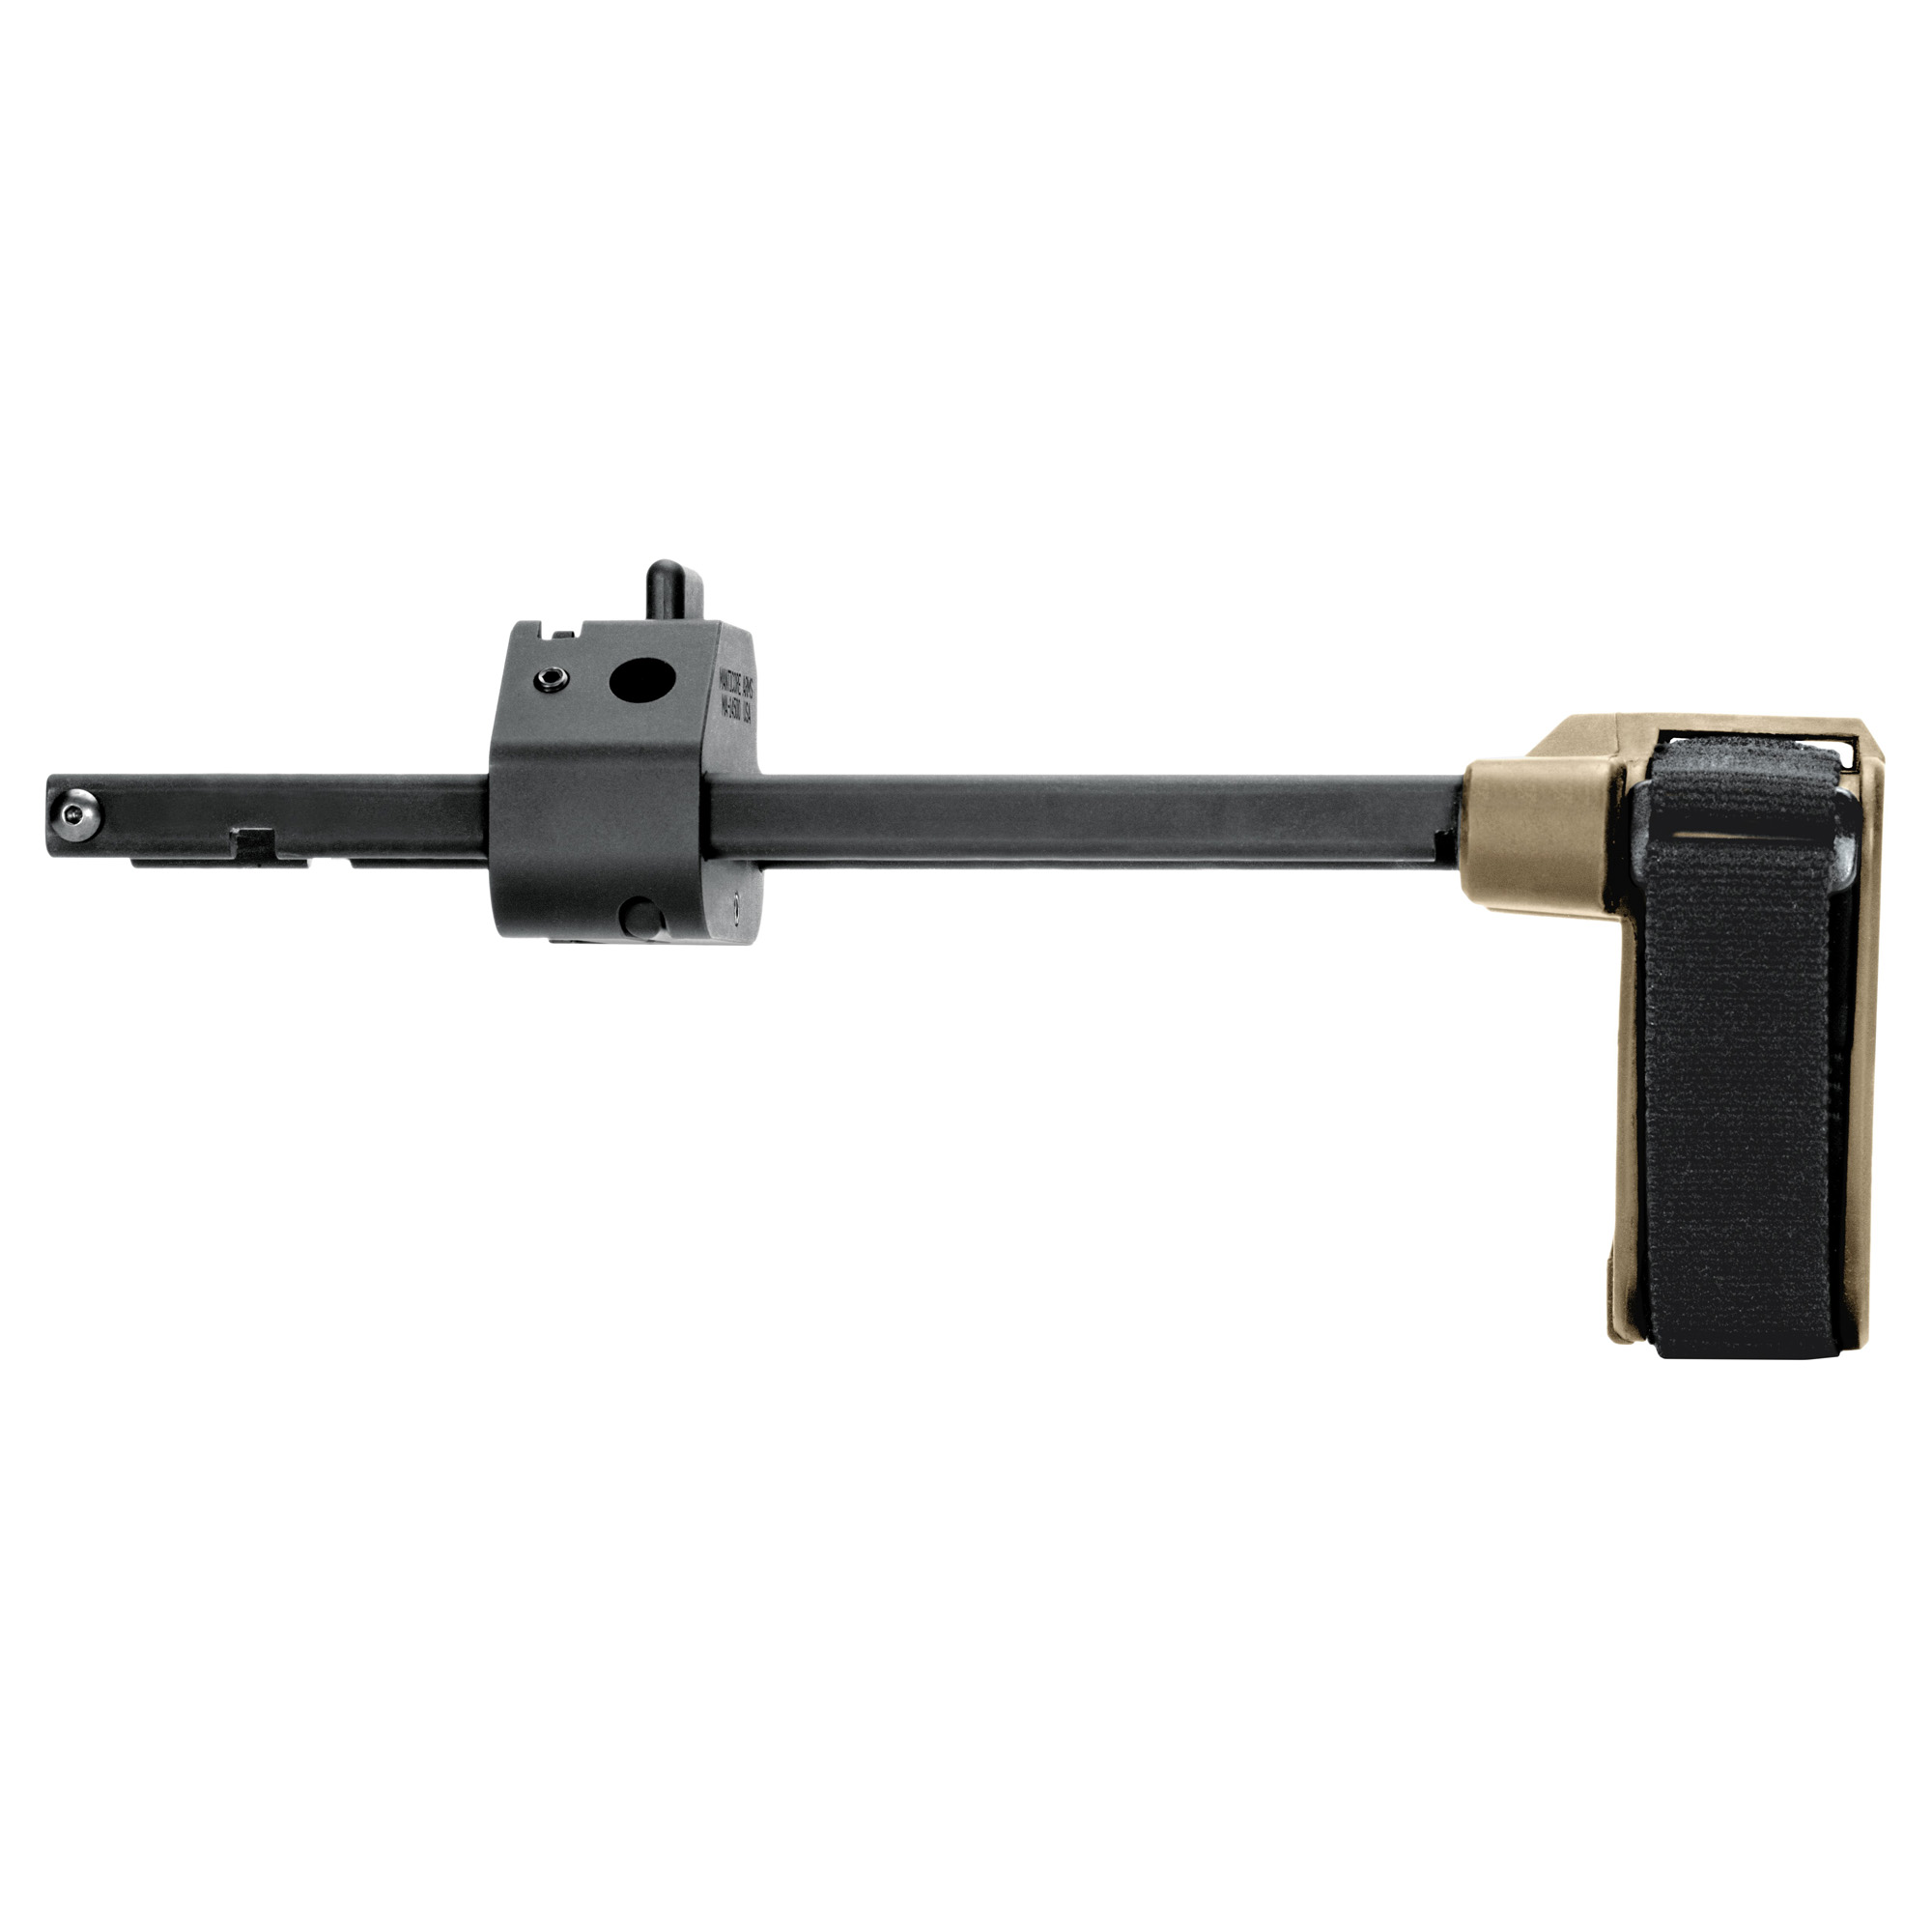 Designed for the CZ Scorpion Evo pistol the CZPDW(TM) Pistol Stabilizing Brace(R) is 3-position adjustable and features a pull-through design allowing you to quickly extend the brace without having to depress the button.